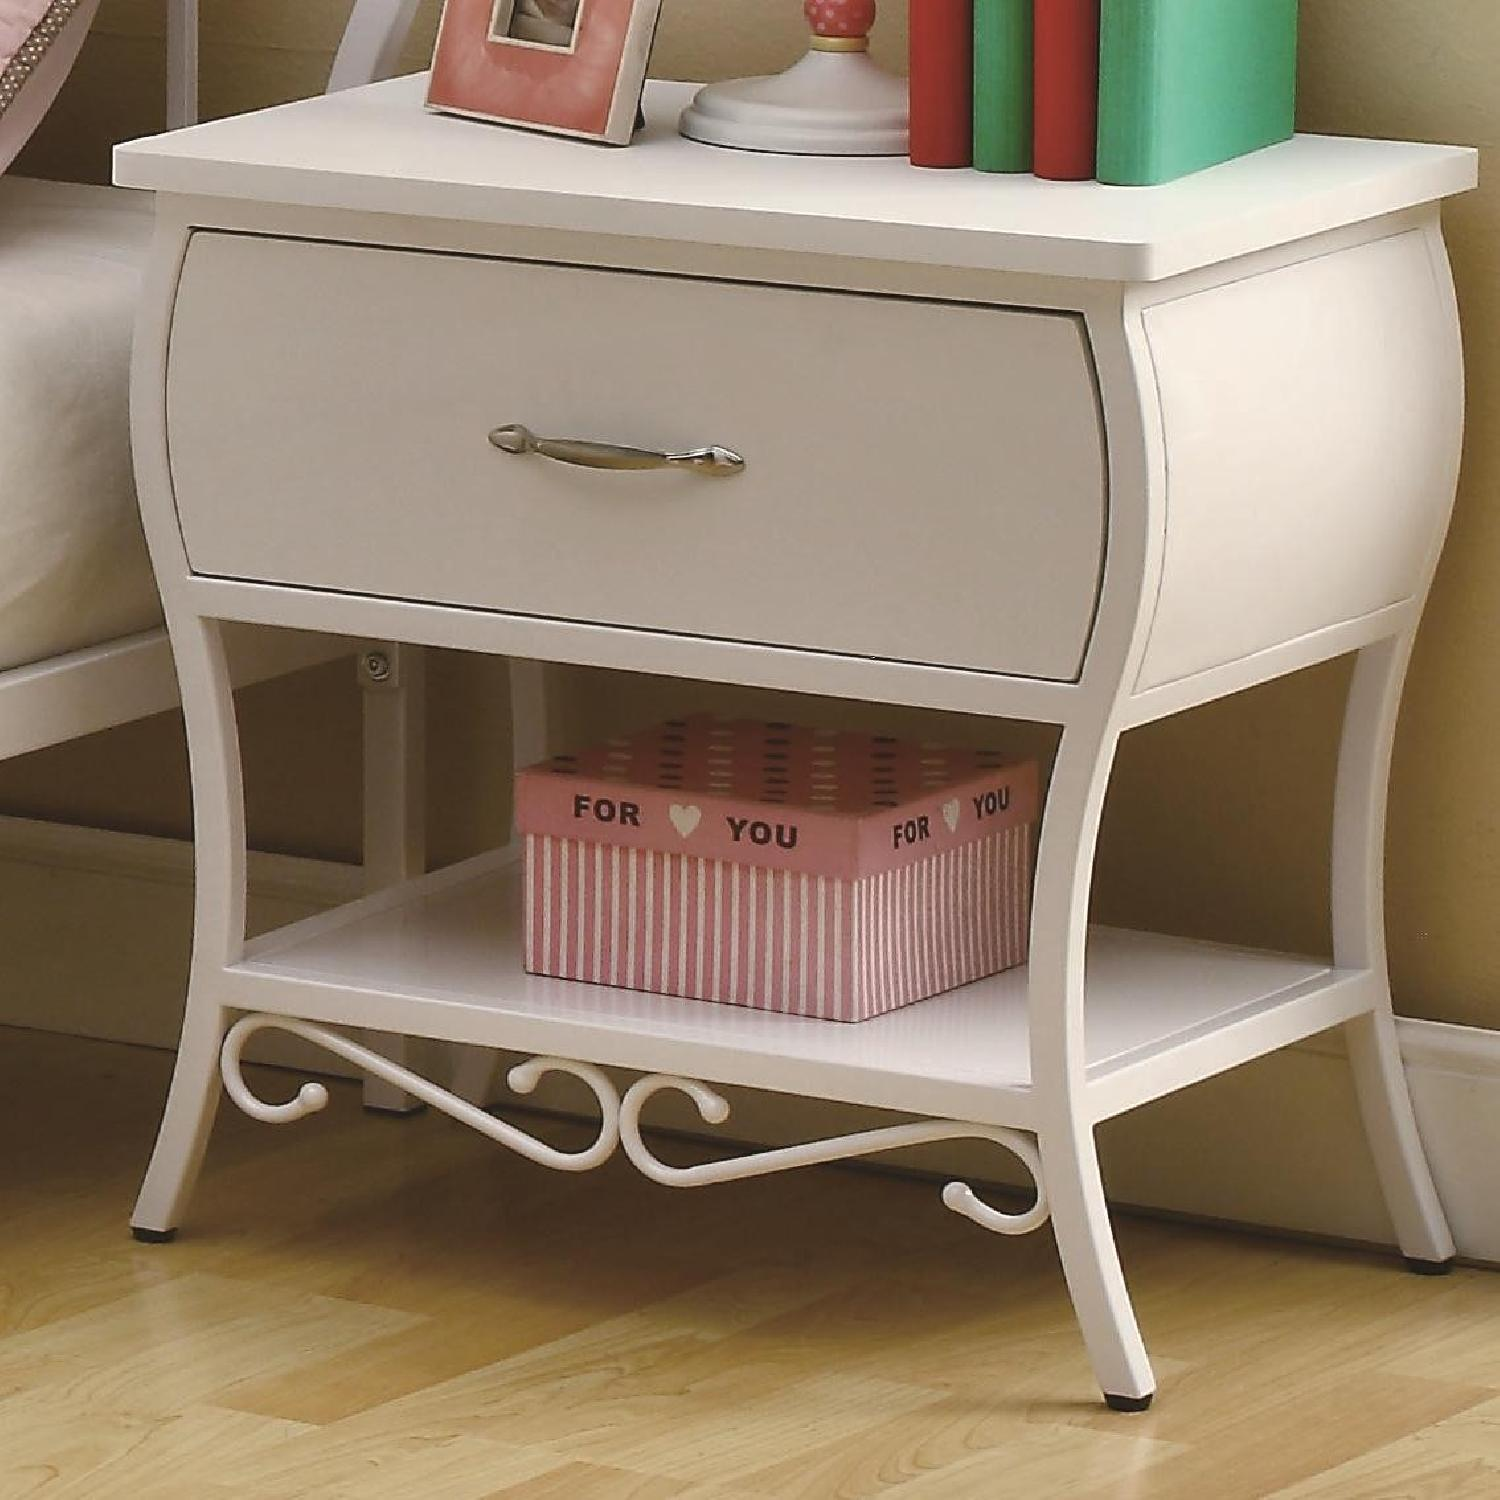 French Country Style Metal Night Table in White - image-1